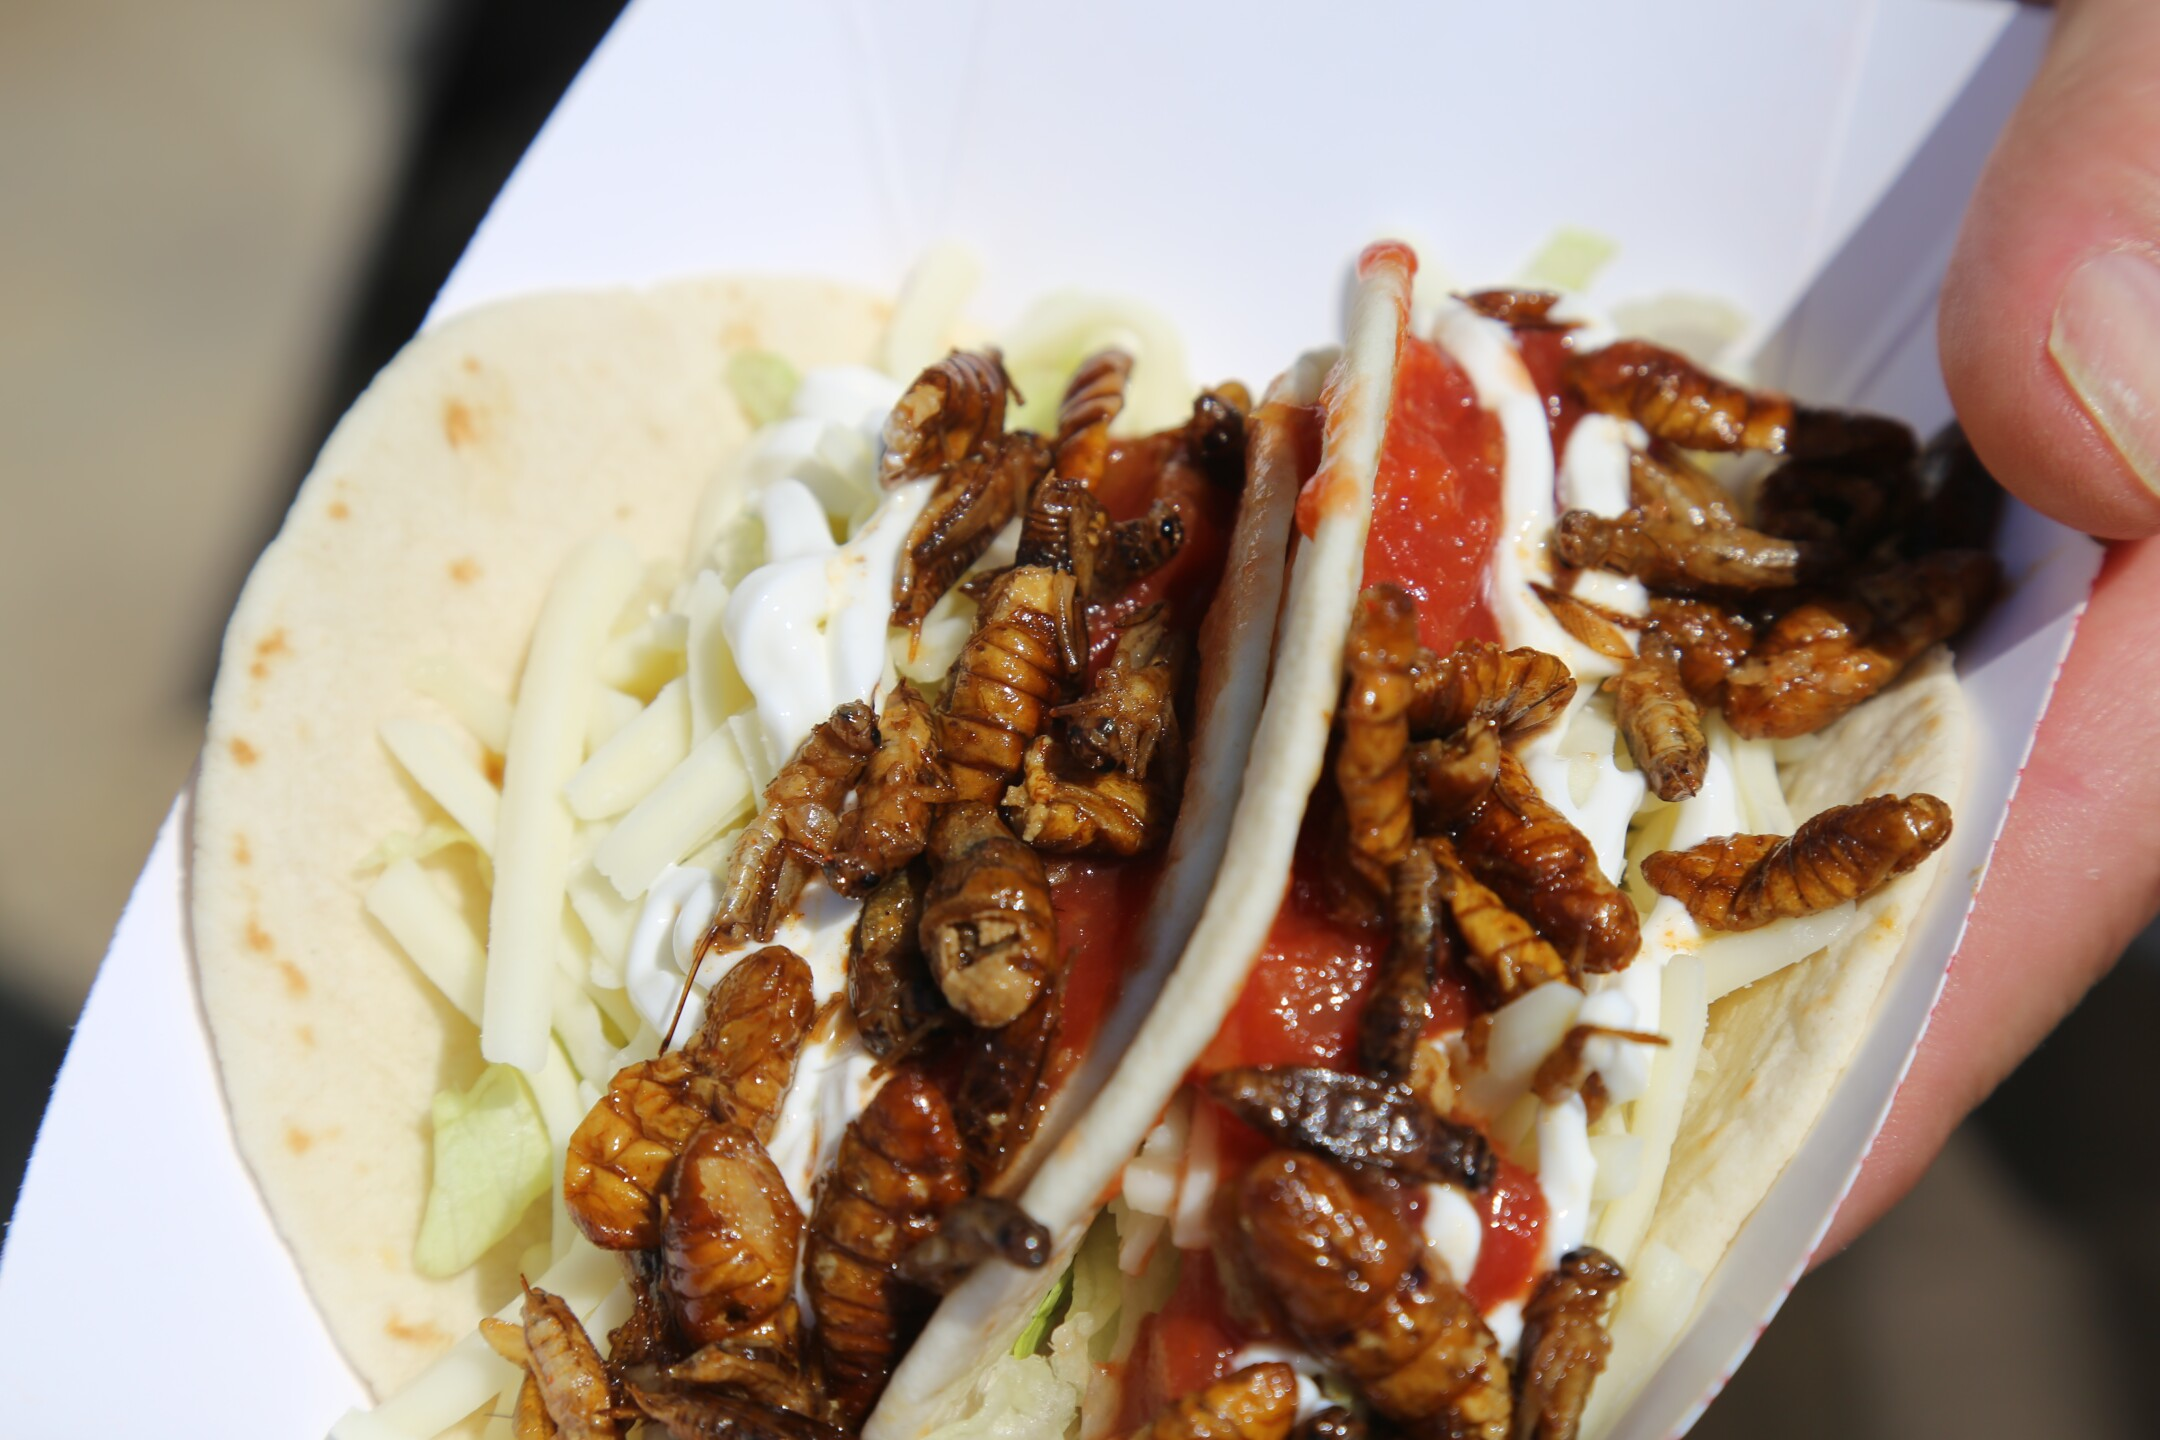 Cricket and Silkworm Taco